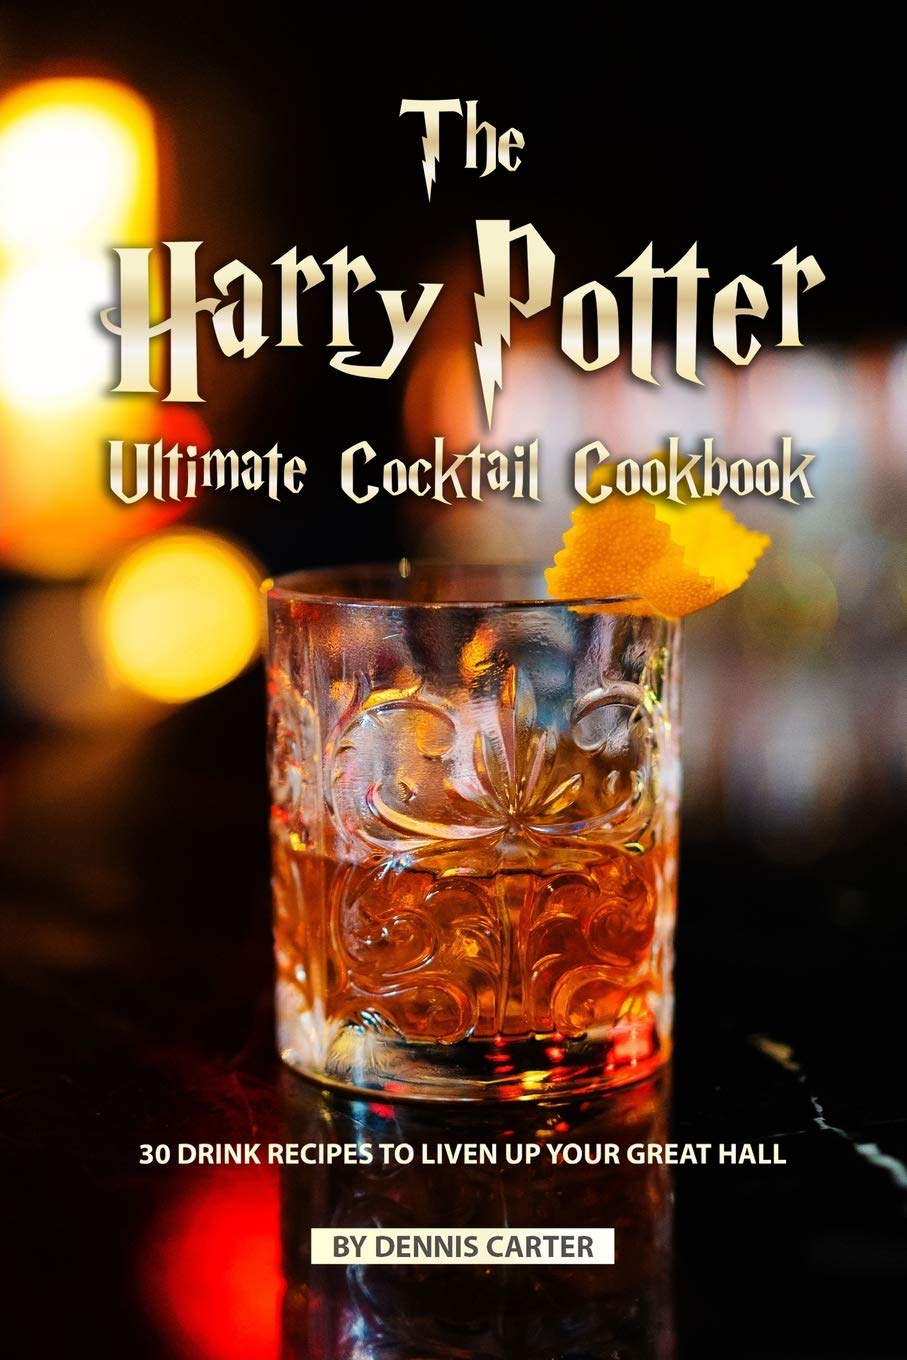 The Harry Potter Ultimate Cocktail Cookbook  30 Drink Recipes To Liven Up Your Great Hall